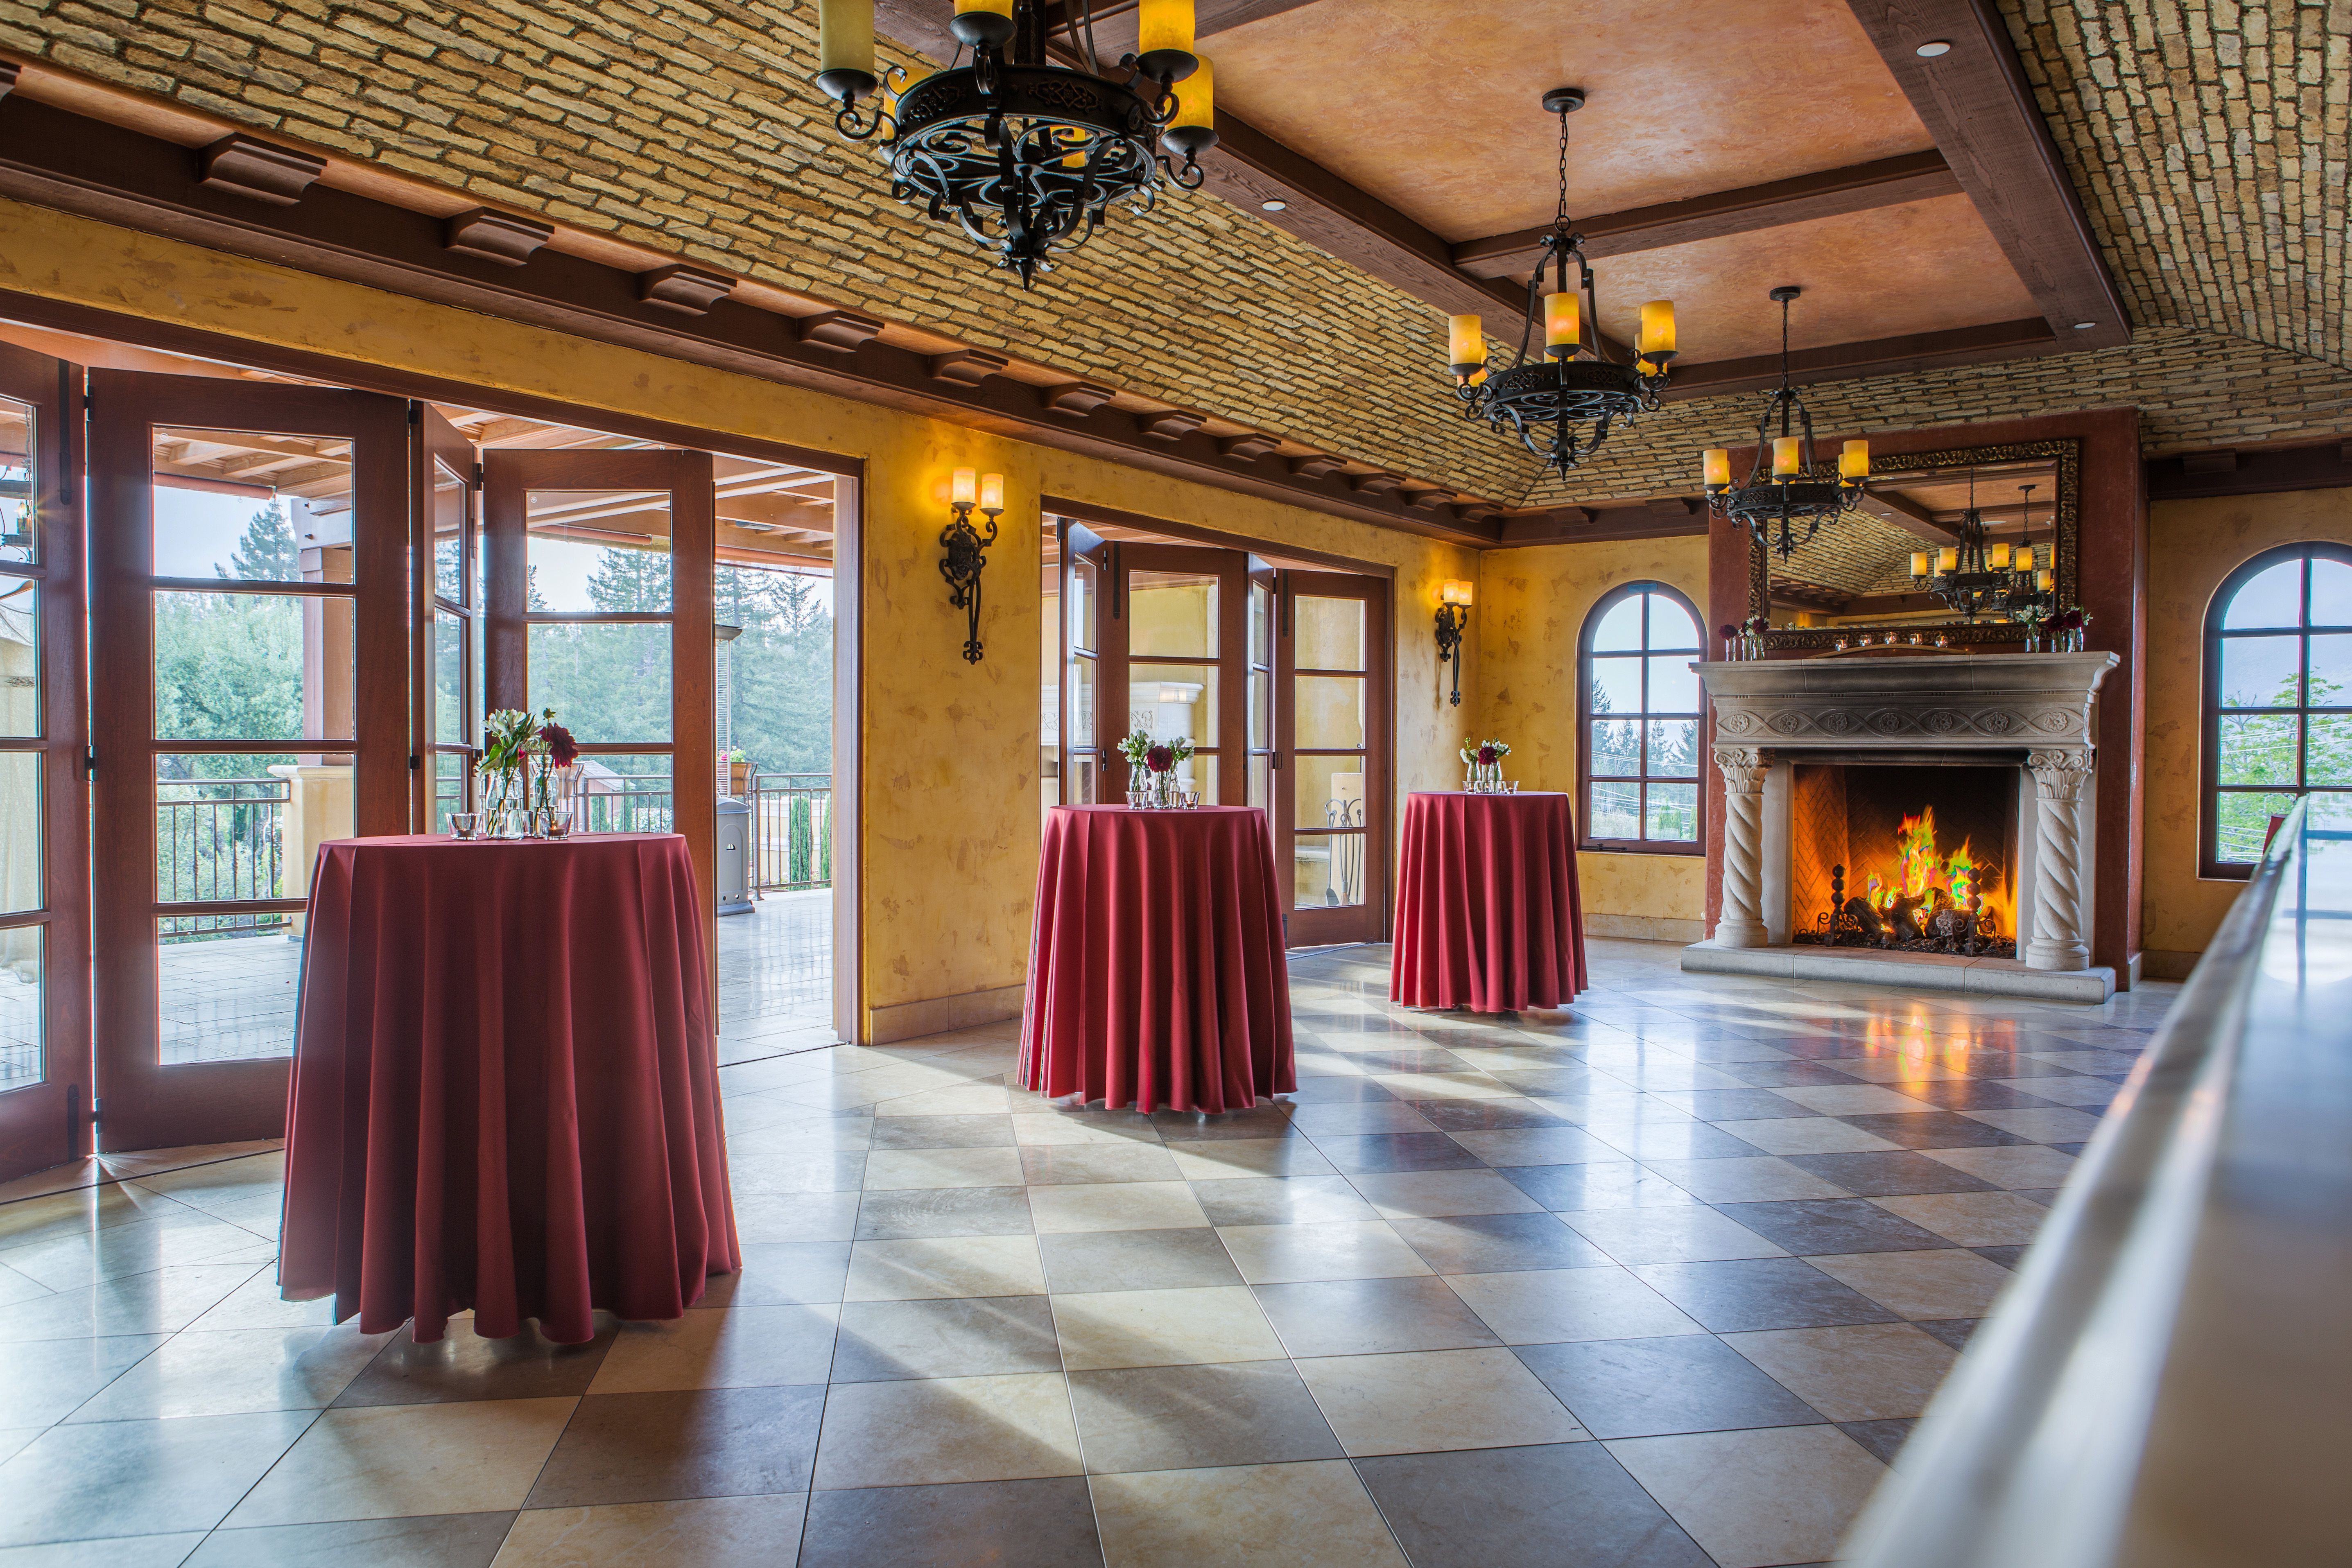 Weddings at Regale Winery Barrel room, Wine country